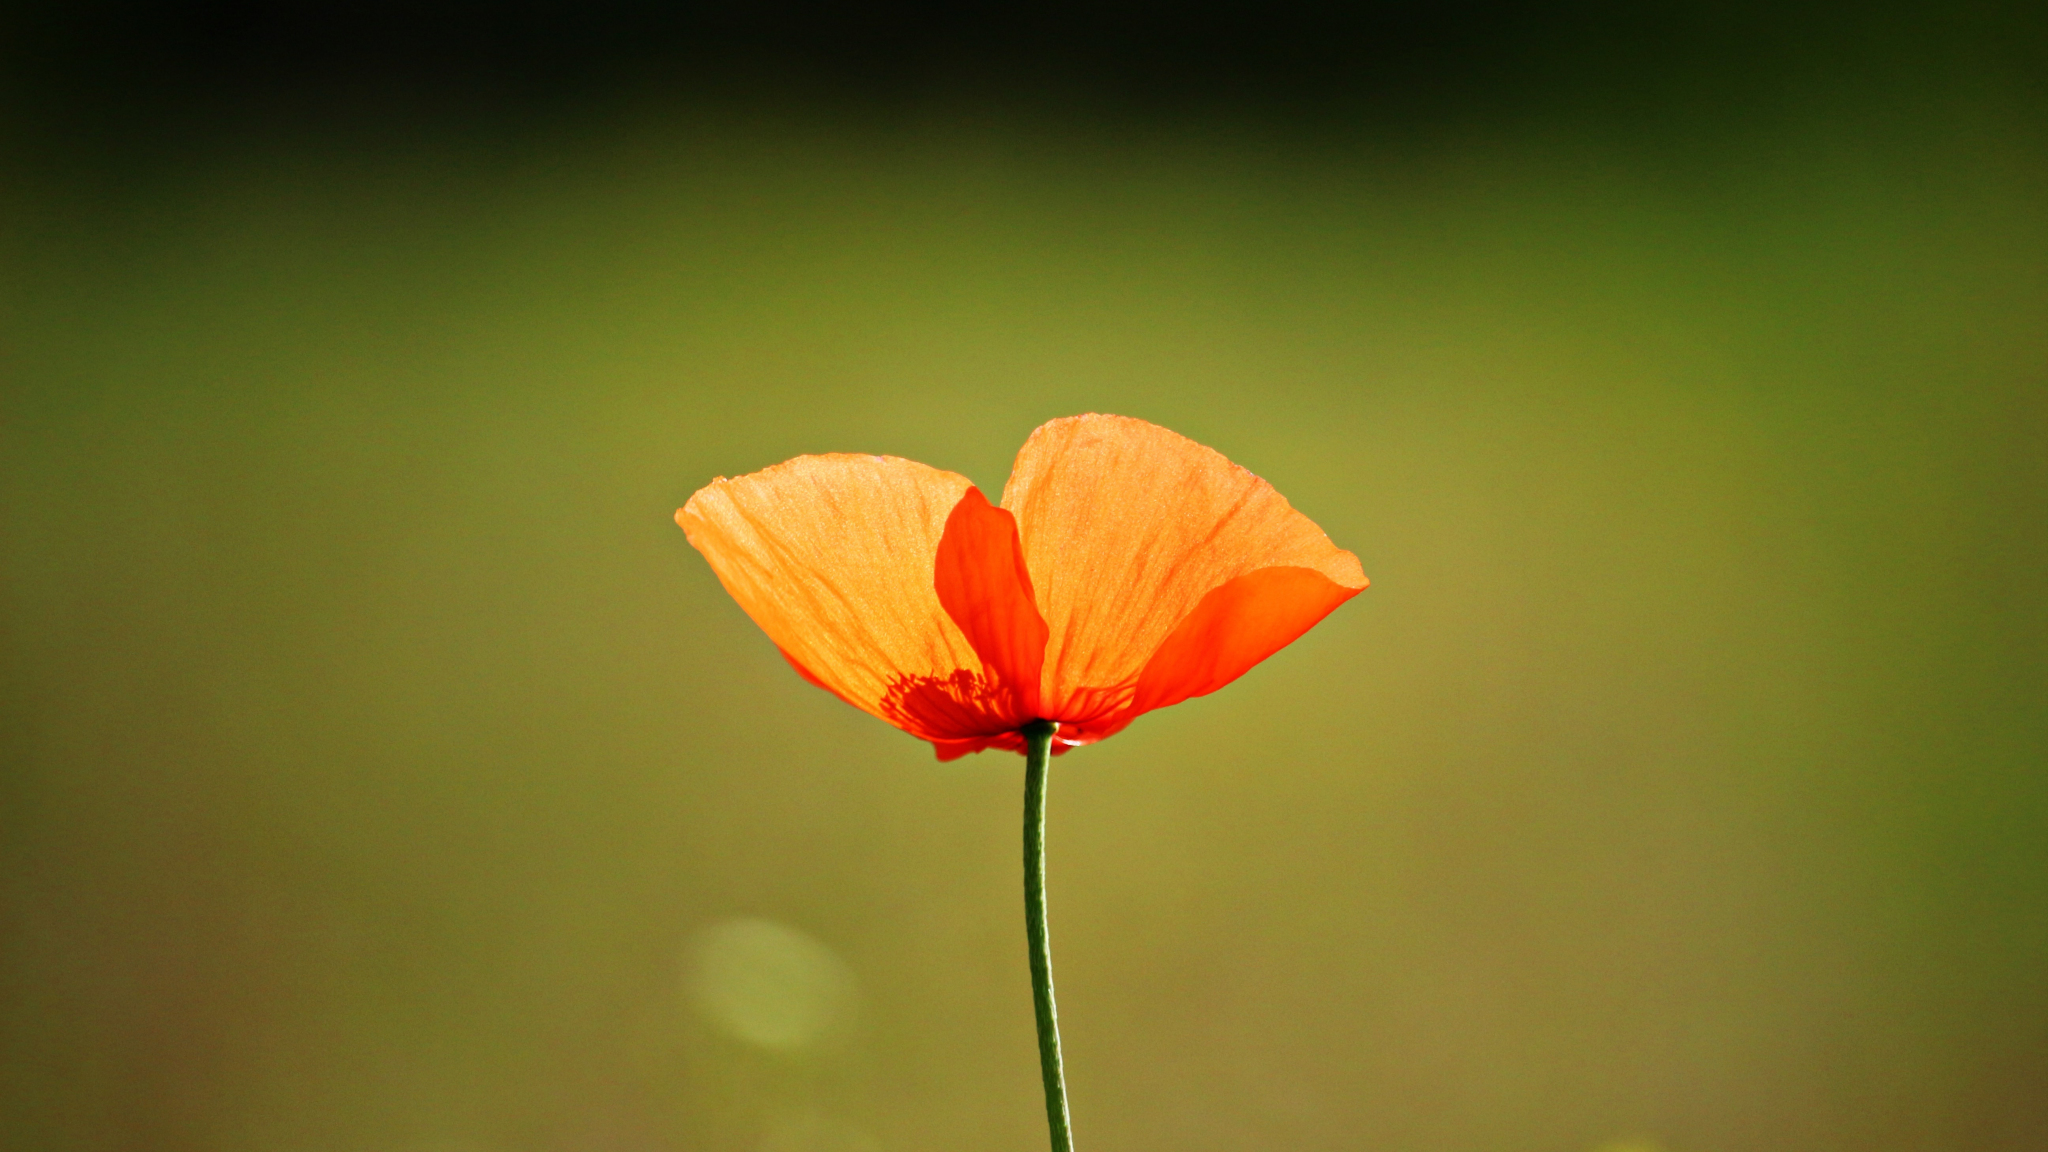 Cute Wallpaper Galaxy S4 Download 2048x1152 Wallpaper Single Flower Orange Poppy